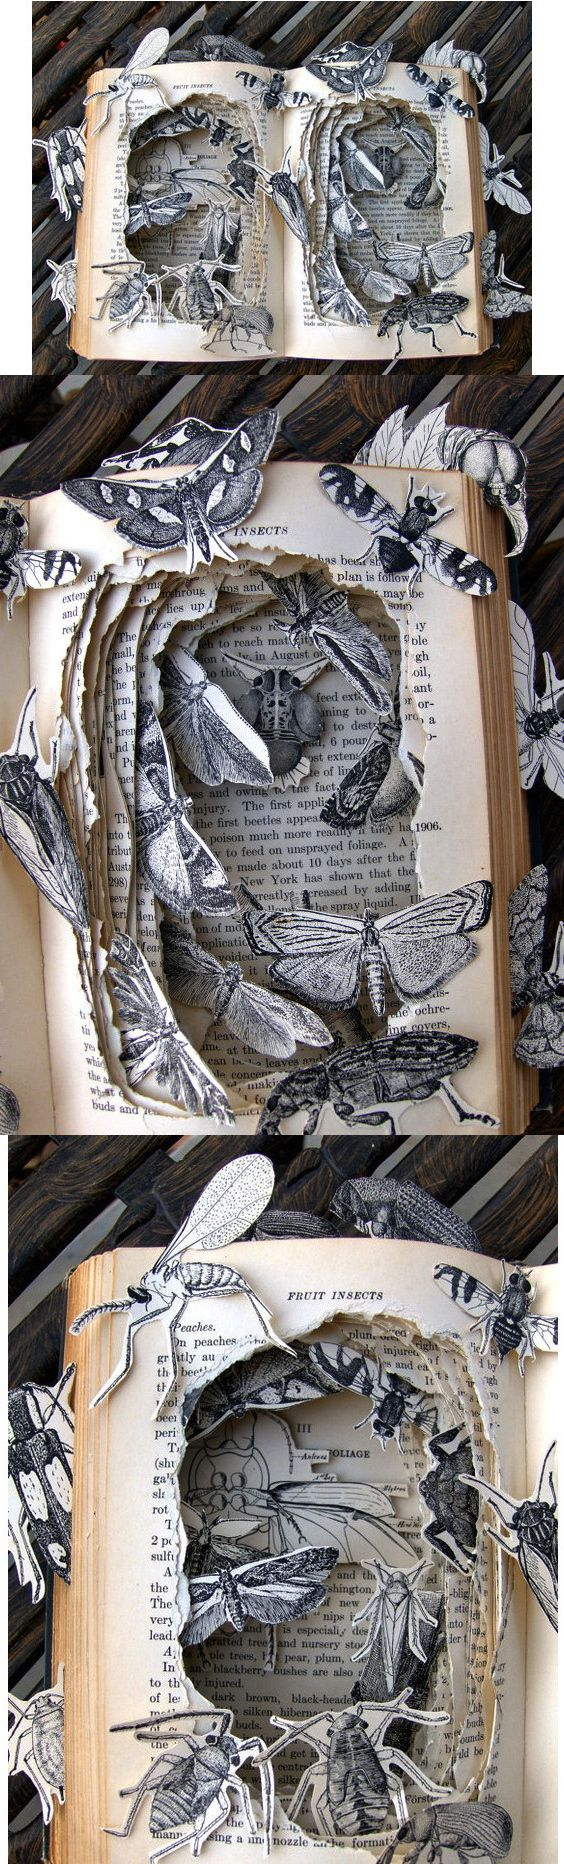 Kelly Campbell, Mayberry's Insects,  book sculpture